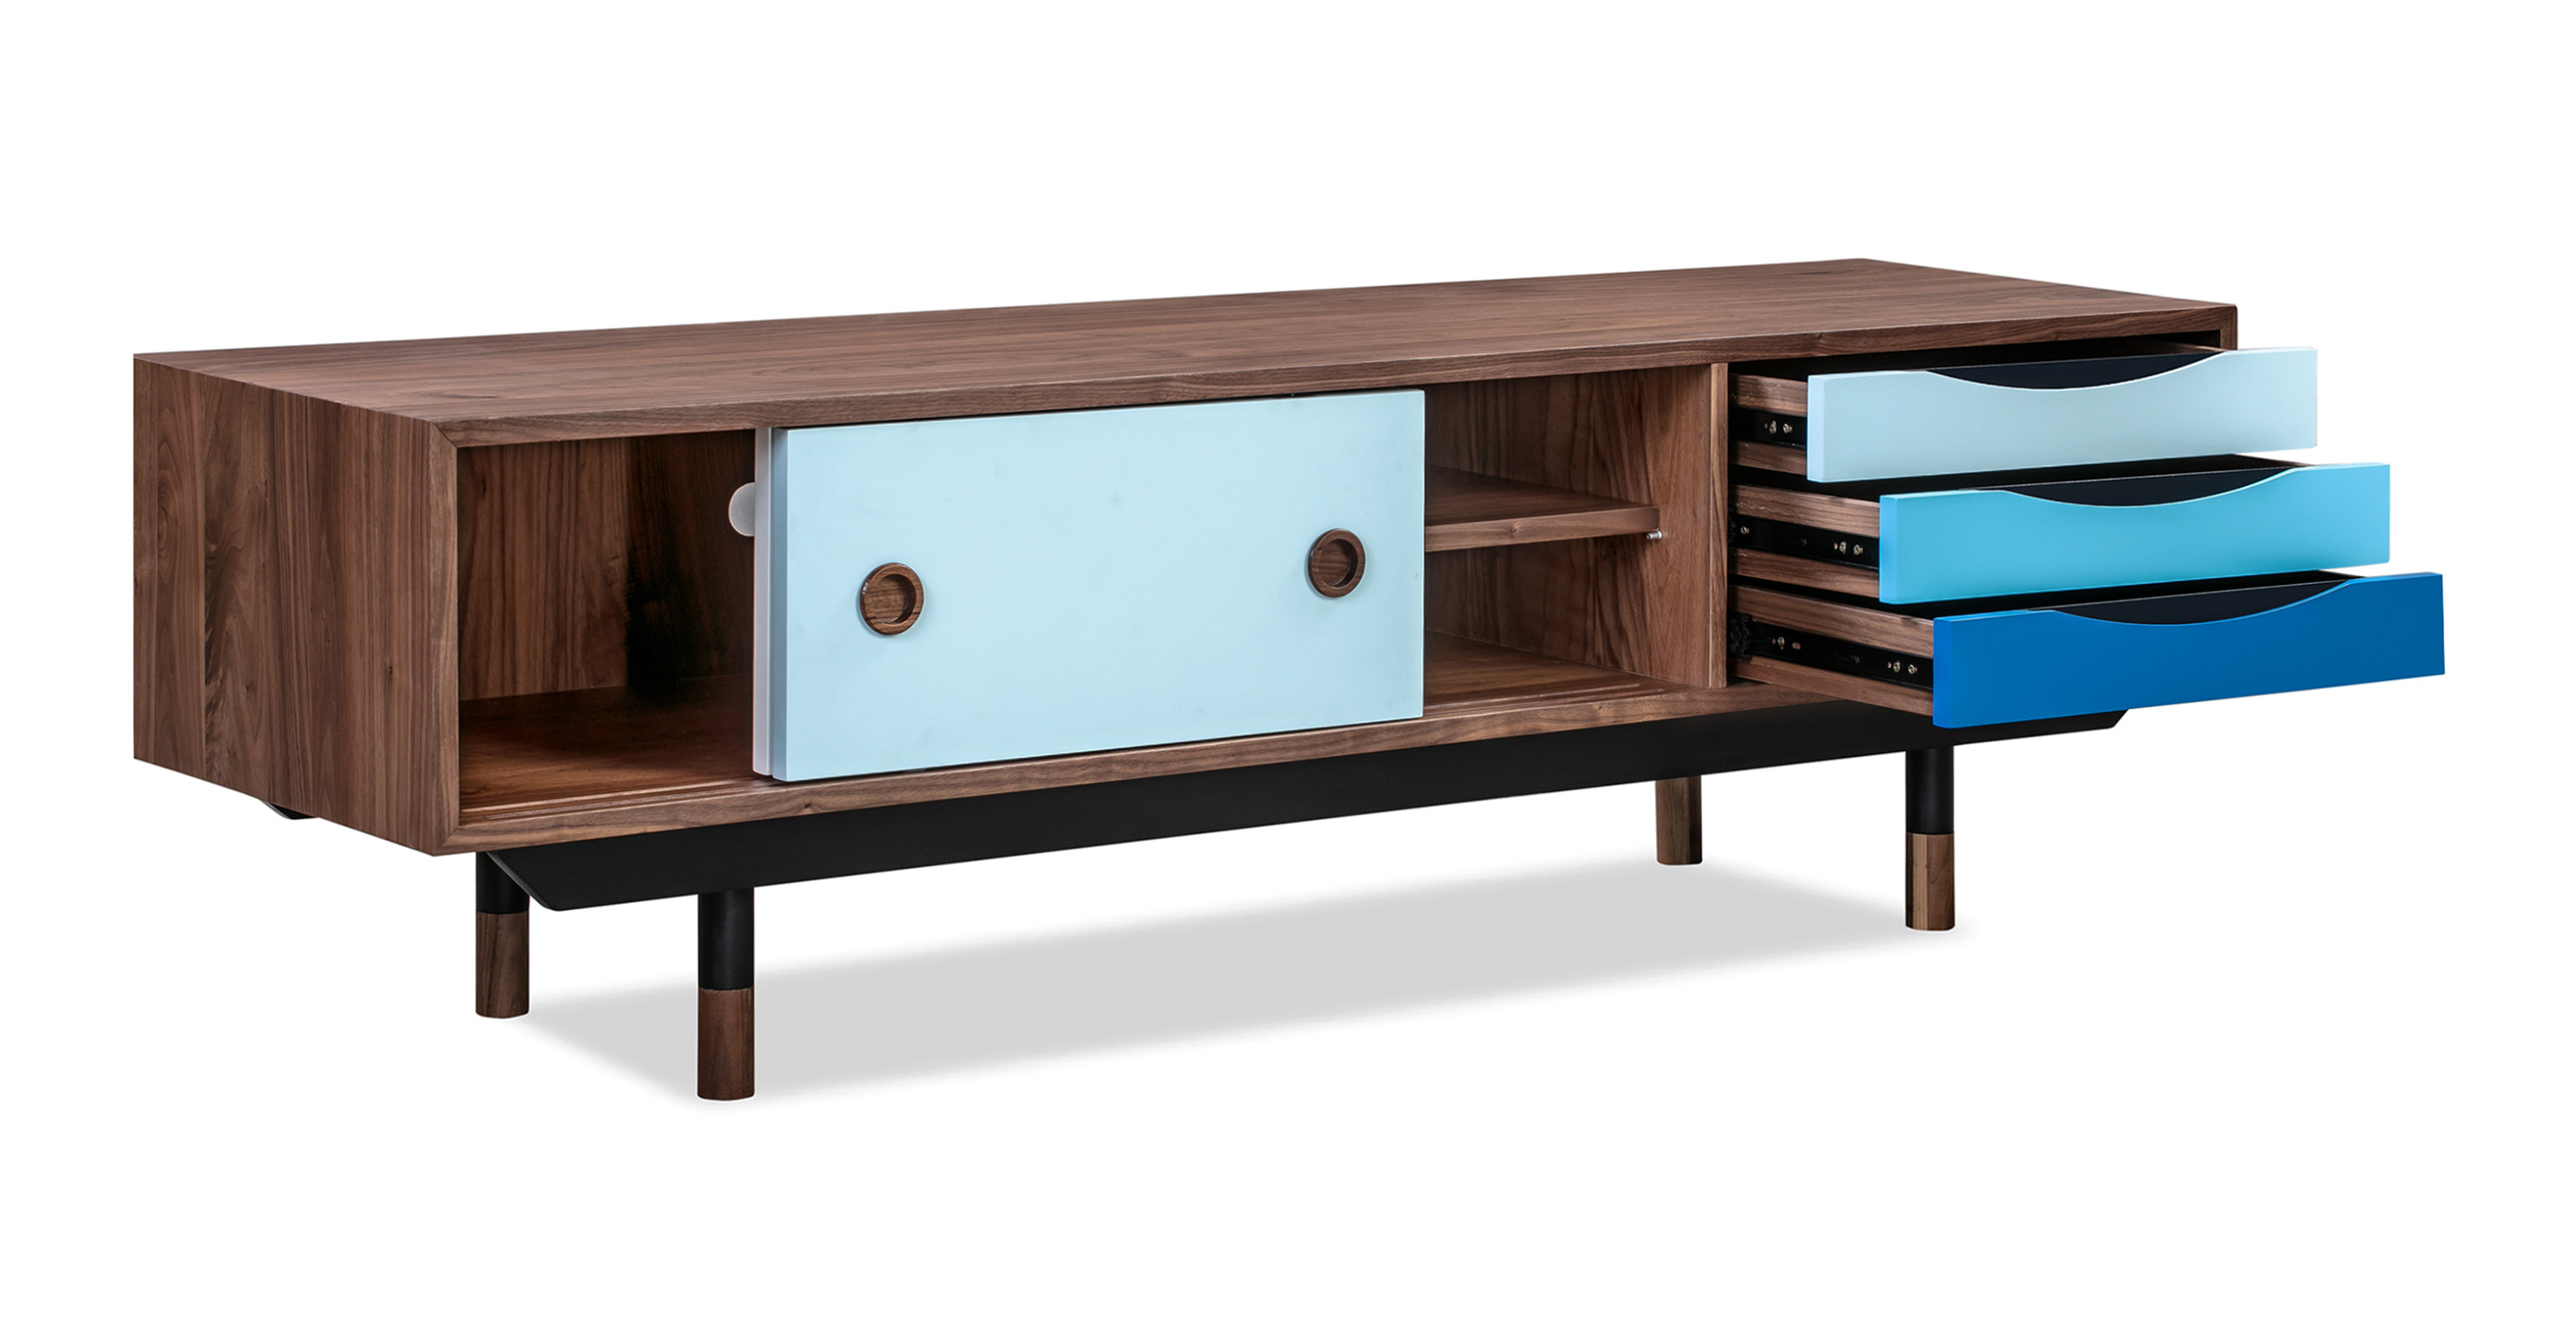 "Color Theory 63"" Media Cabinet, Walnut/Blue"